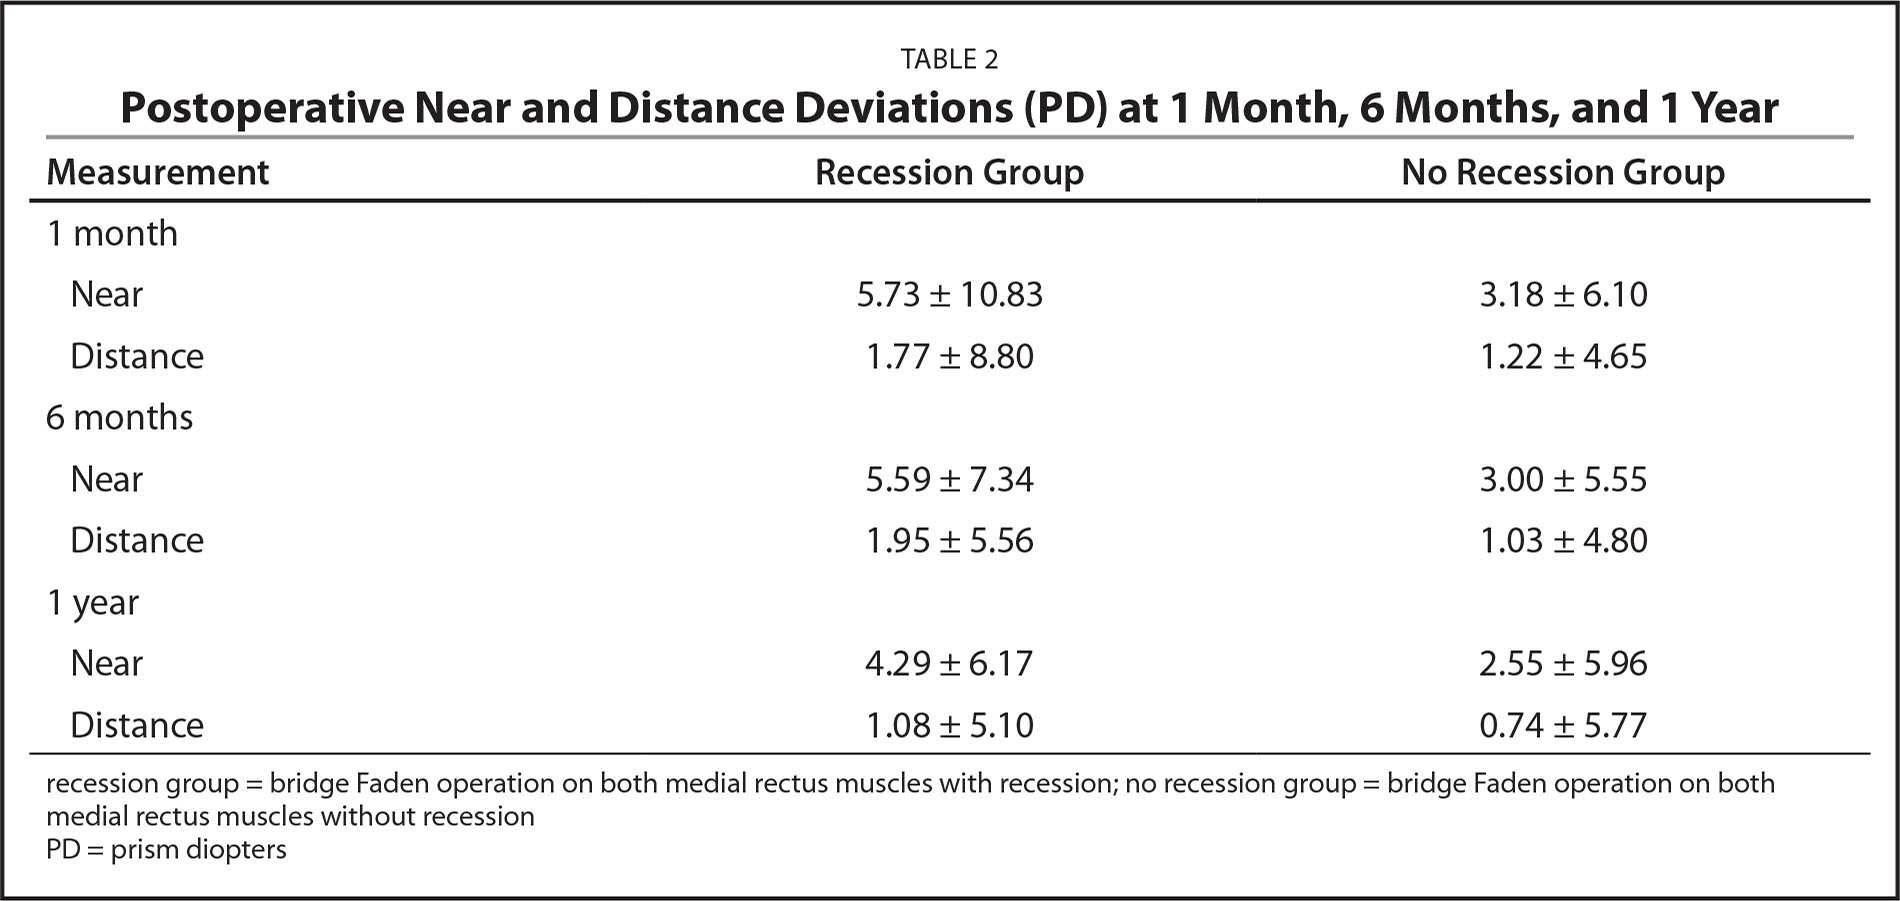 Postoperative Near and Distance Deviations (PD) at 1 Month, 6 Months, and 1 Year